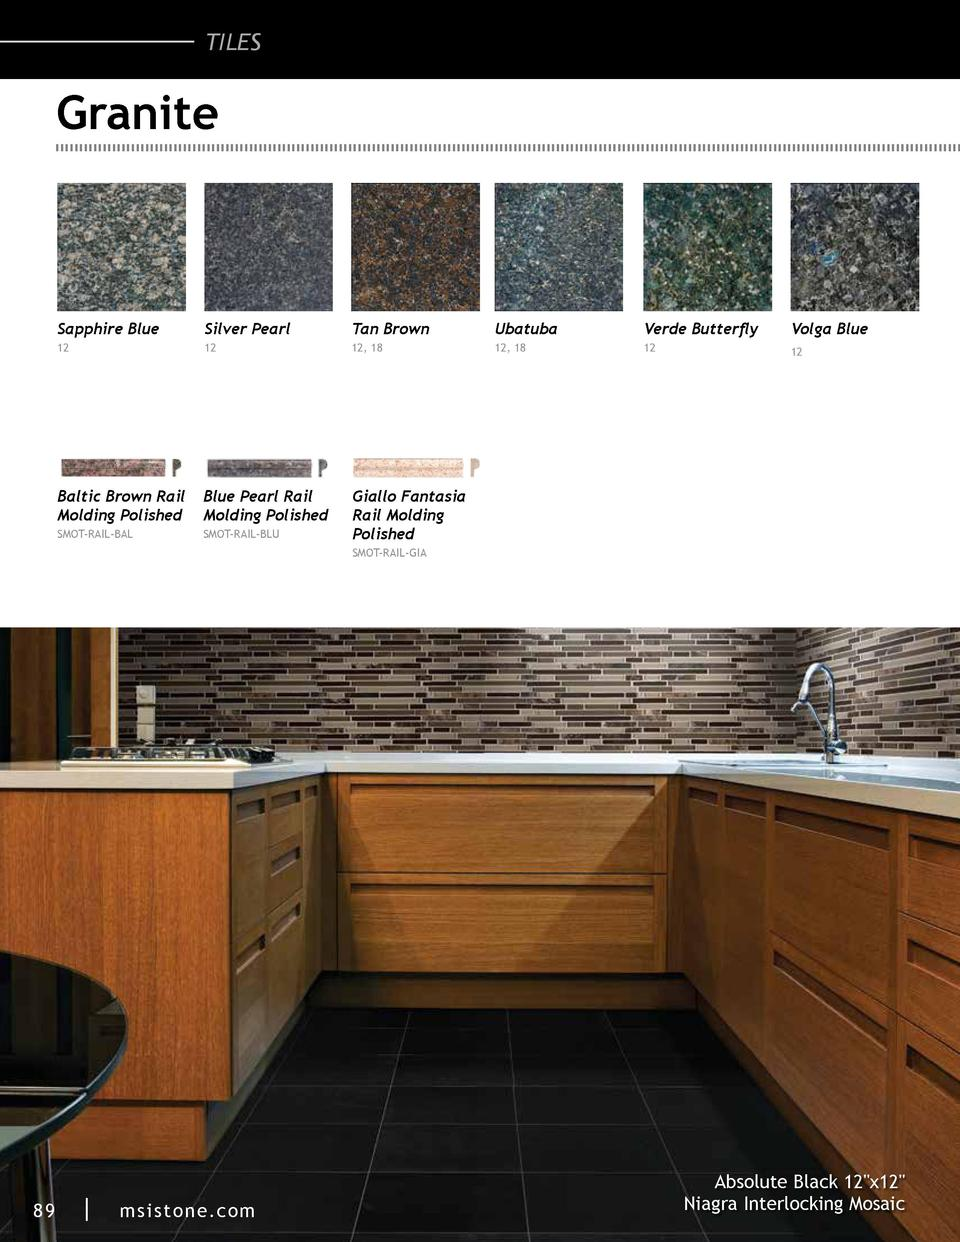 TILES  Granite  Sapphire Blue  Silver Pearl  Tan Brown  Ubatuba  Verde Butterfly  Volga Blue  12  12  12, 18  12, 18  12  ...